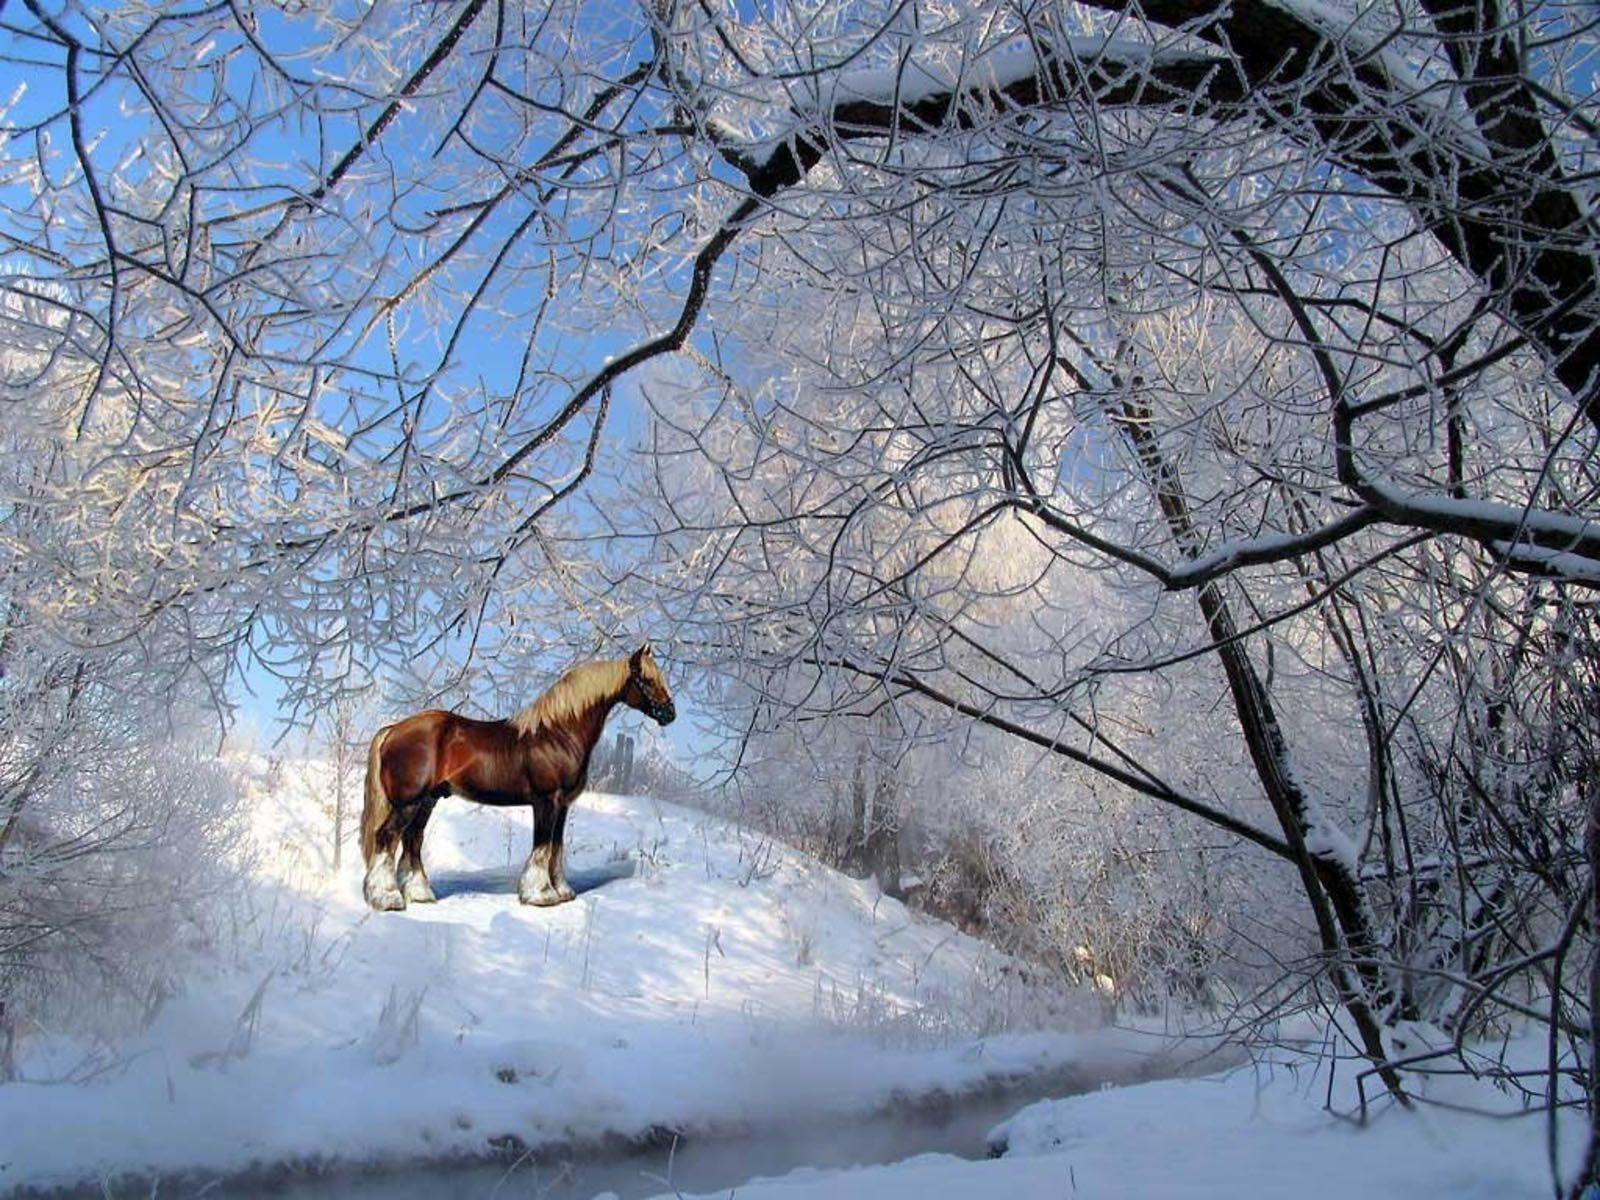 Top Wallpaper Horse Winter - 94646351bd997c856ba3a394f168219a  Graphic_394274.jpg